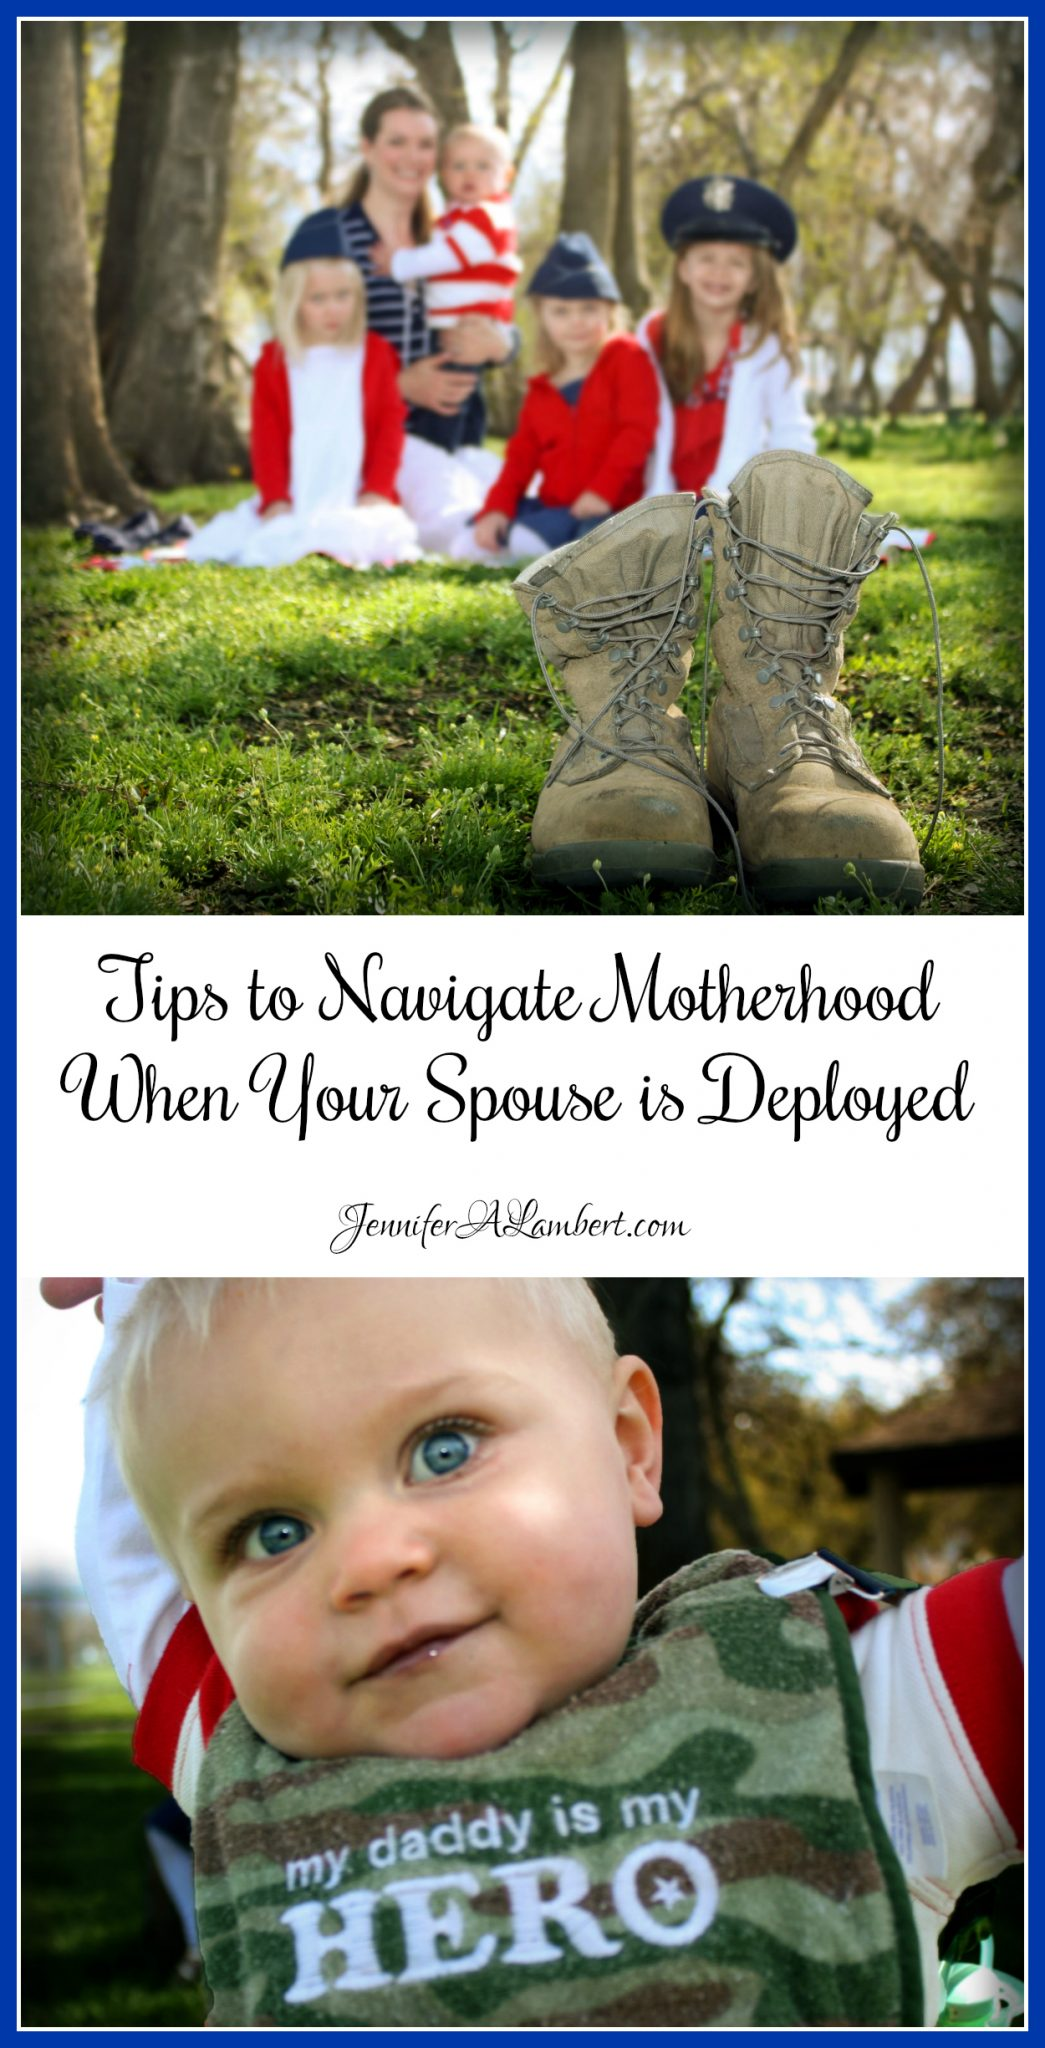 Tips to Navigate Motherhood When Your Spouse is Deployed